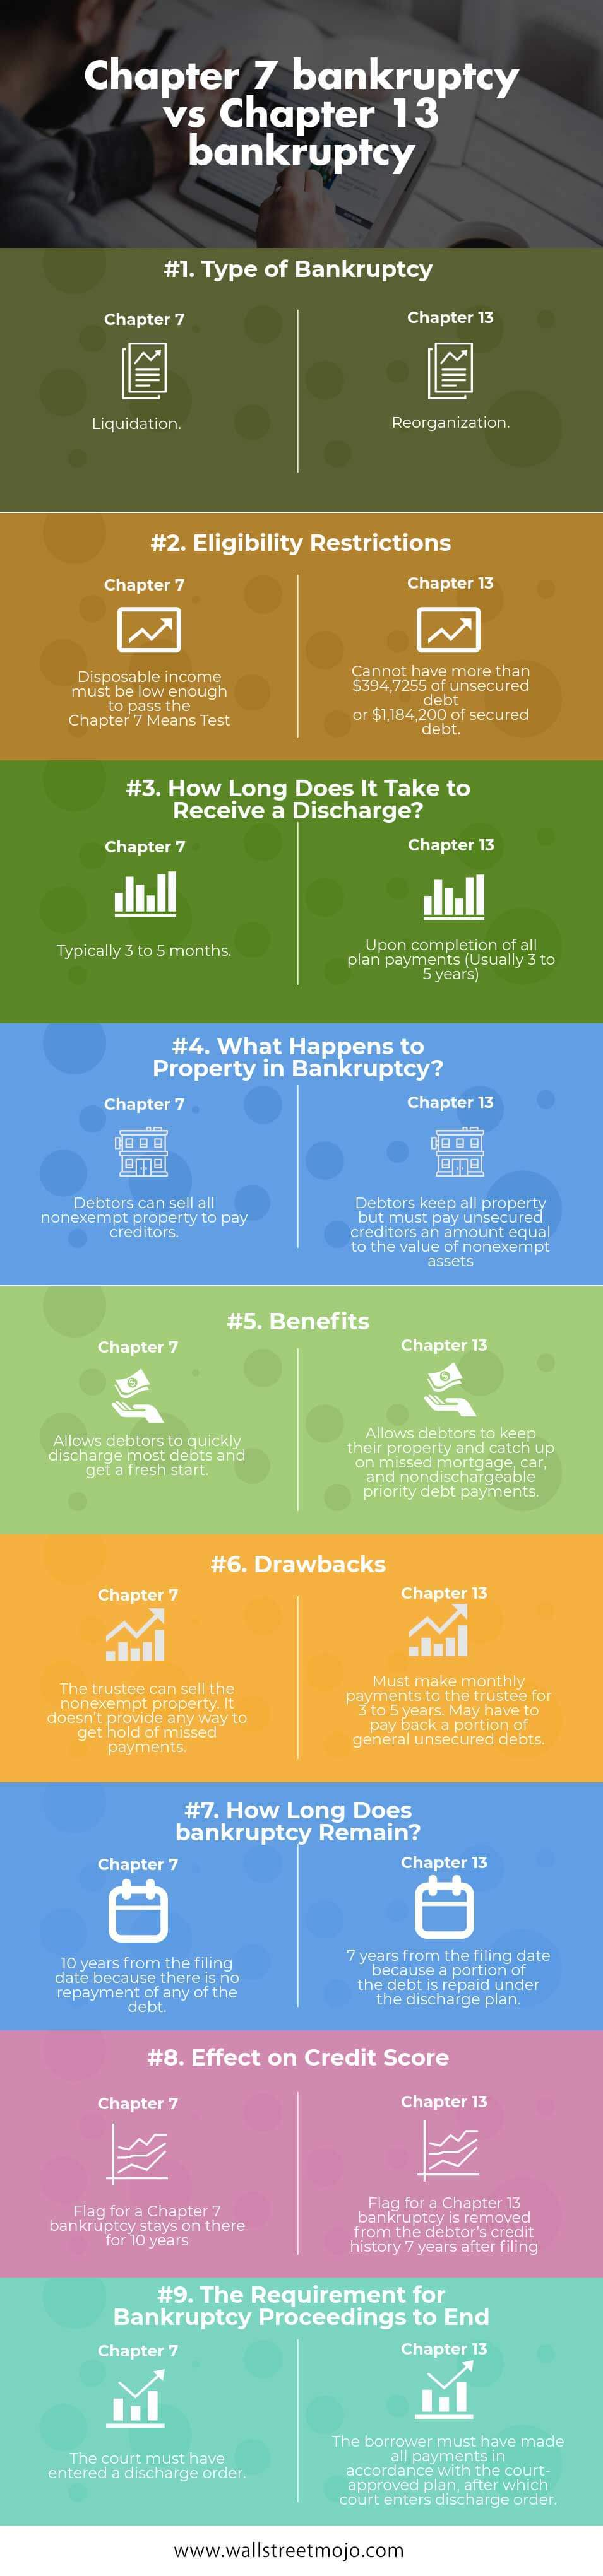 Chapter 7 bankruptcy vs Chapter 13 bankruptcy